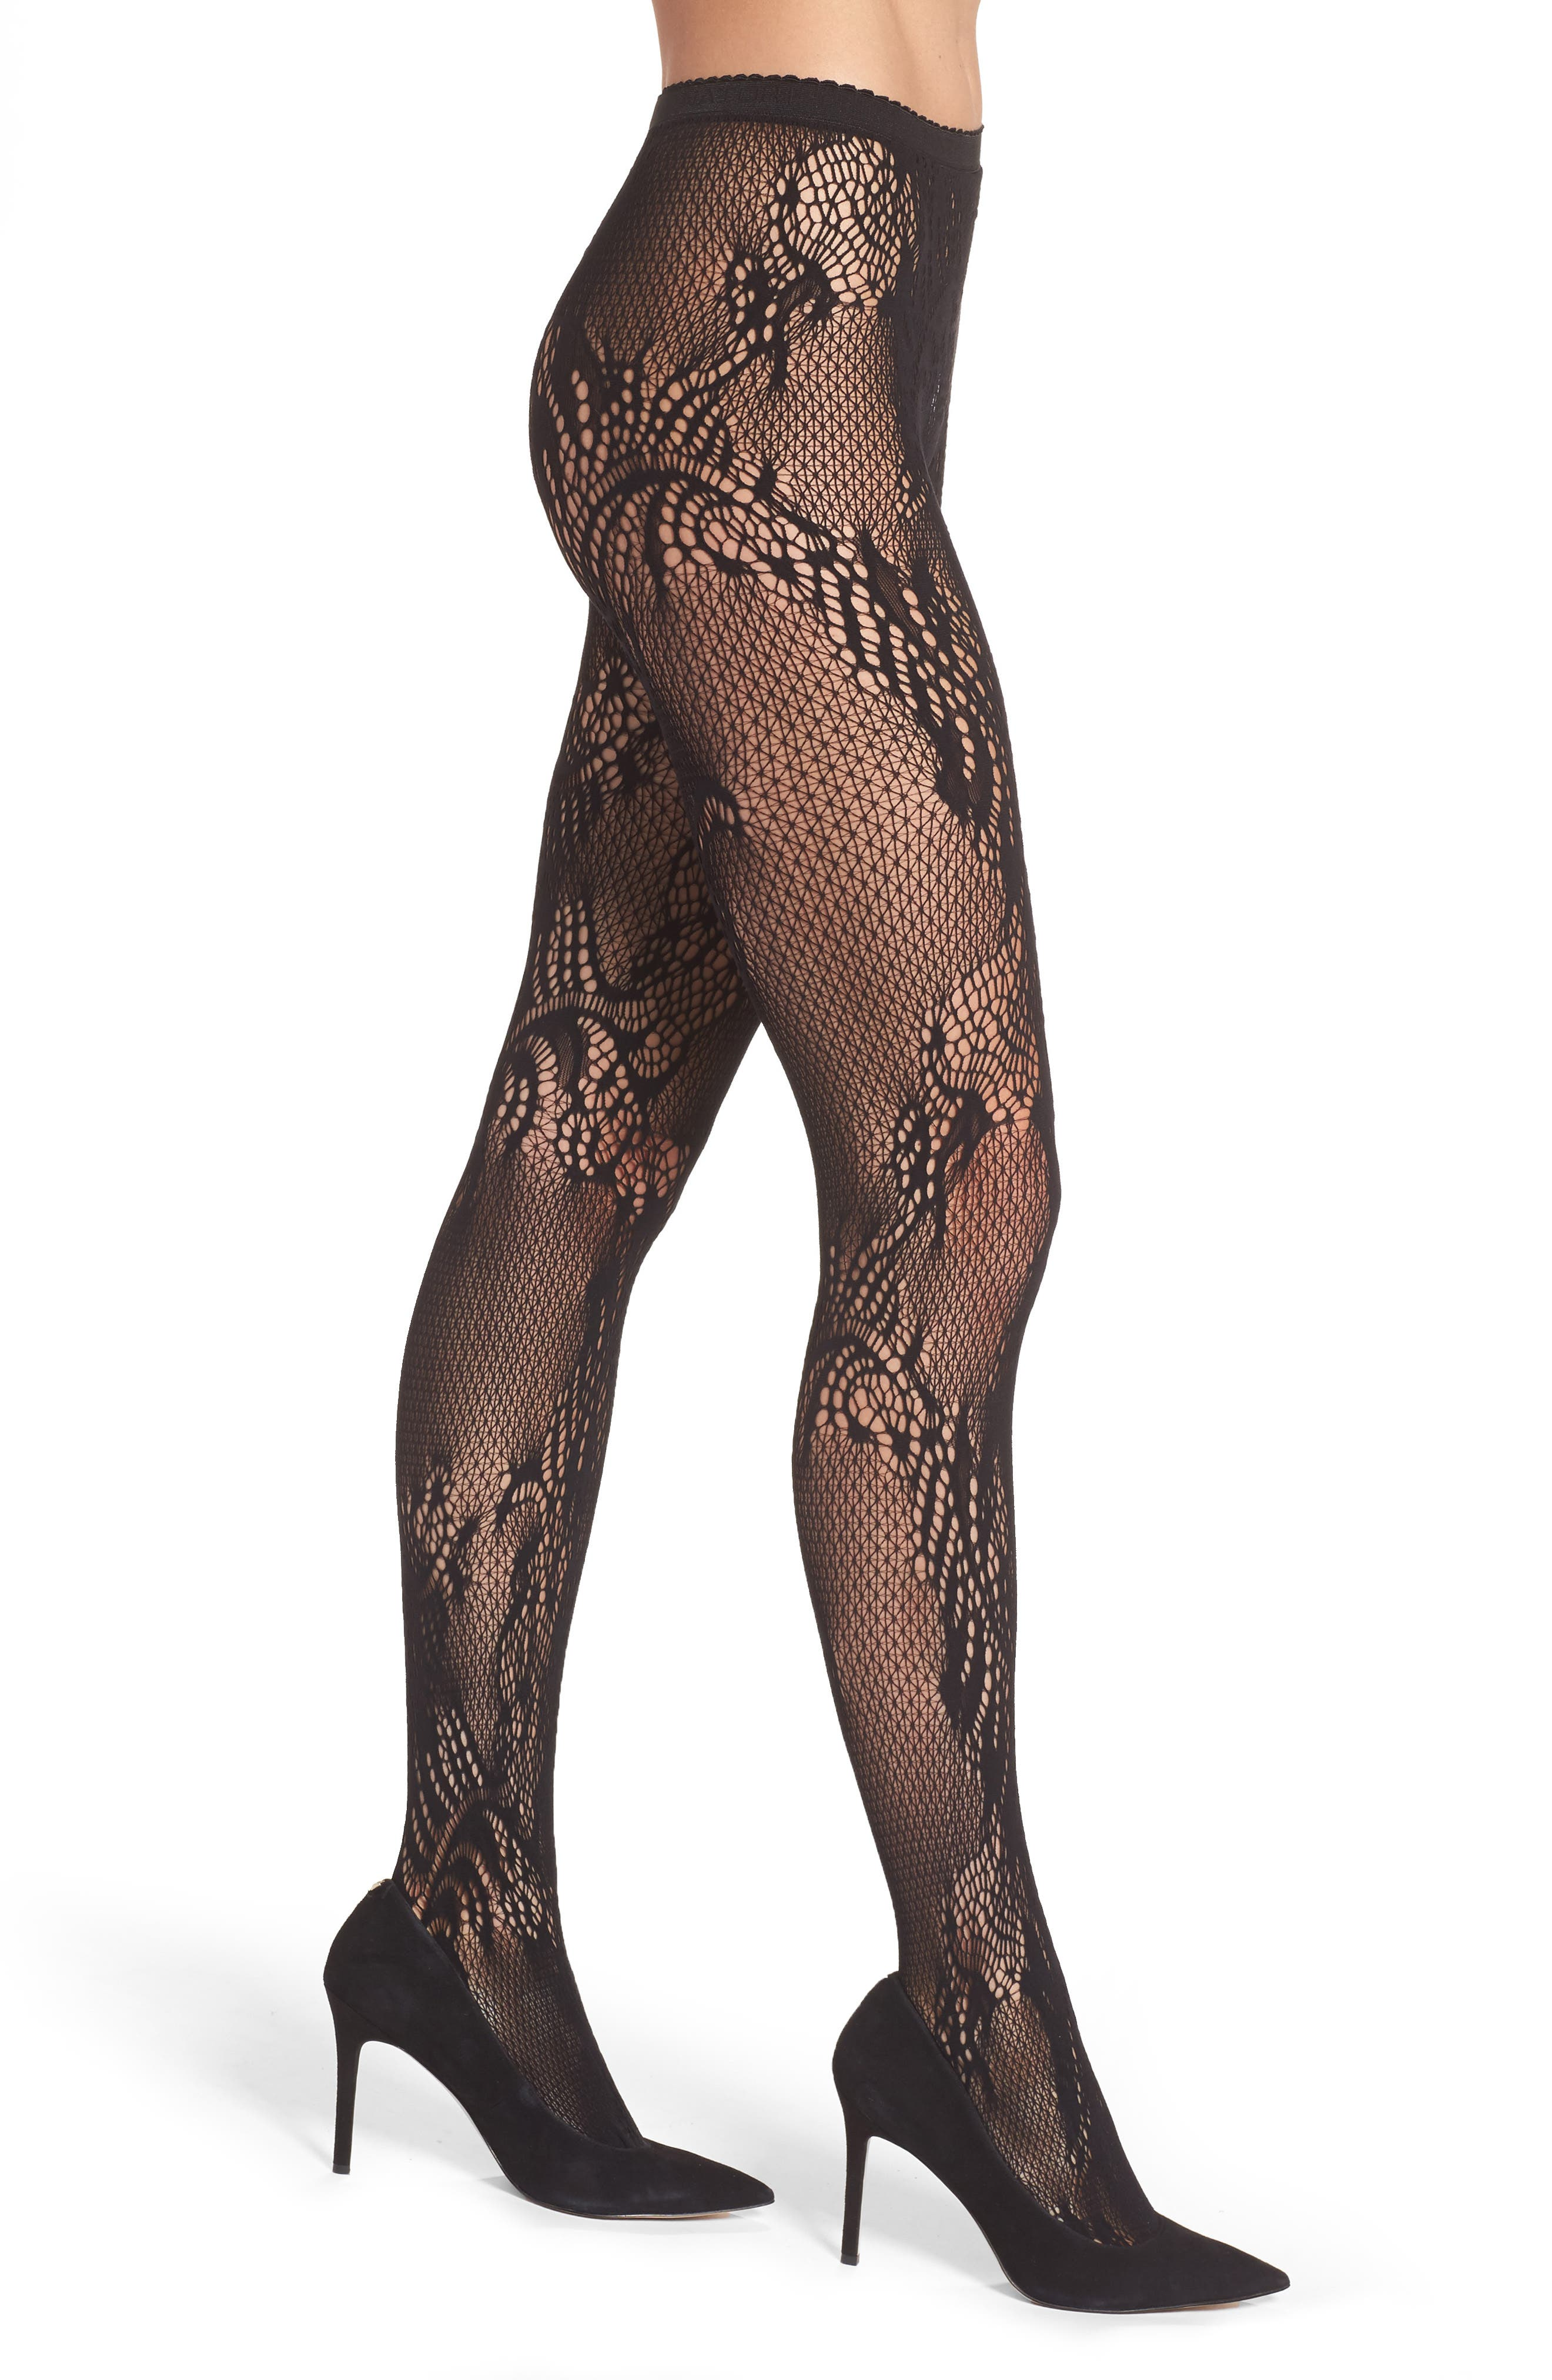 Natori Feather Lace Fishnet Tights